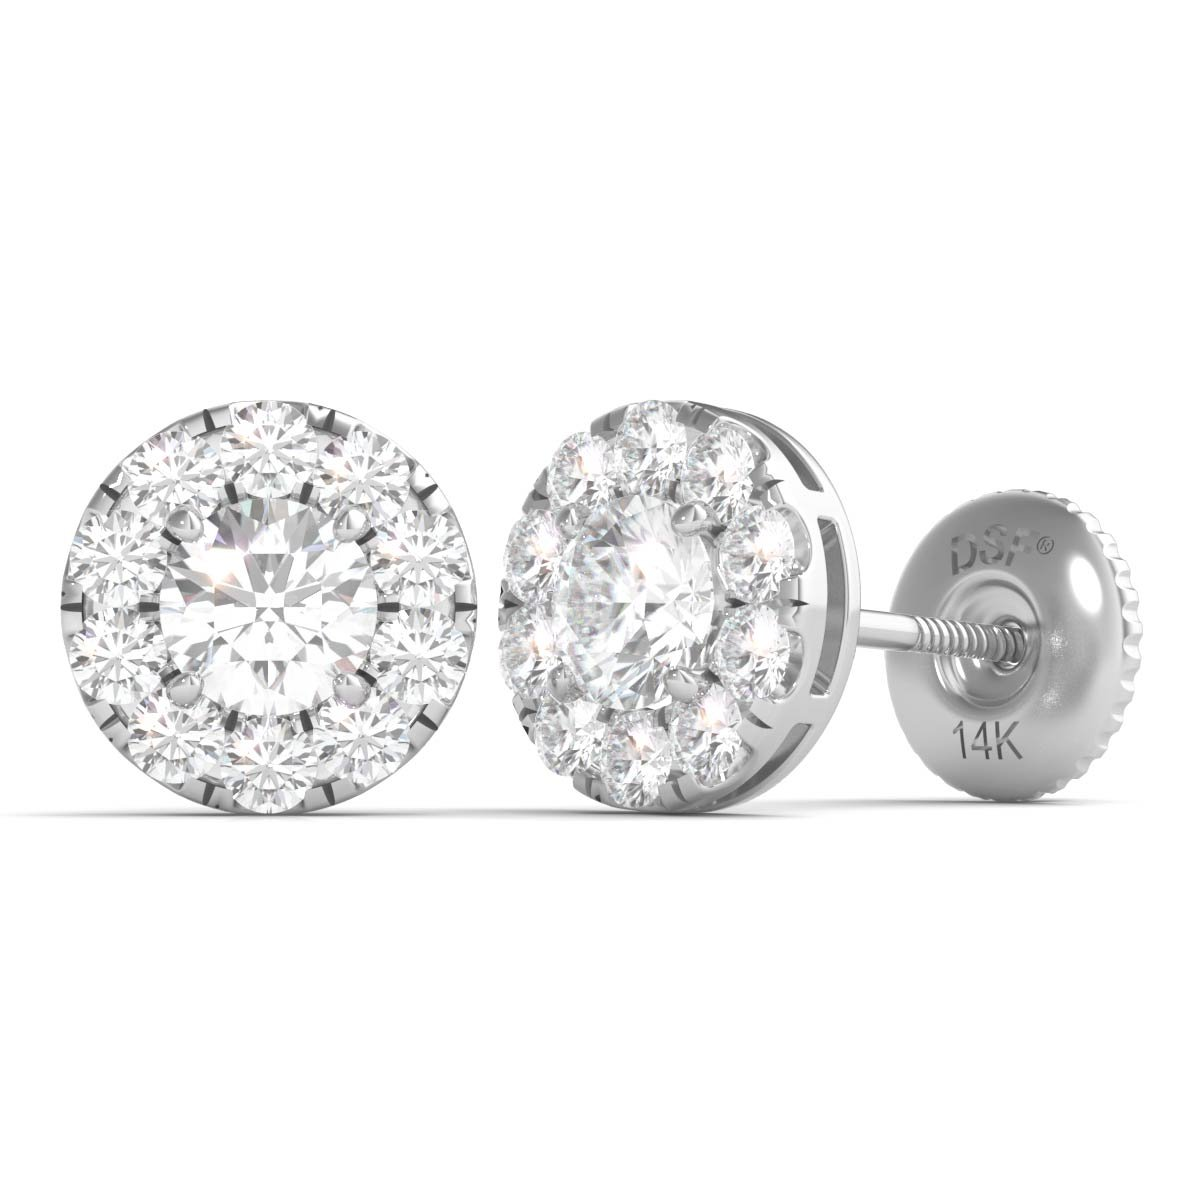 Diamond Studs Forever 14K White Gold Diamond Halo Earrings (3/4 Ct tw IGI USA Cert GH/I1)